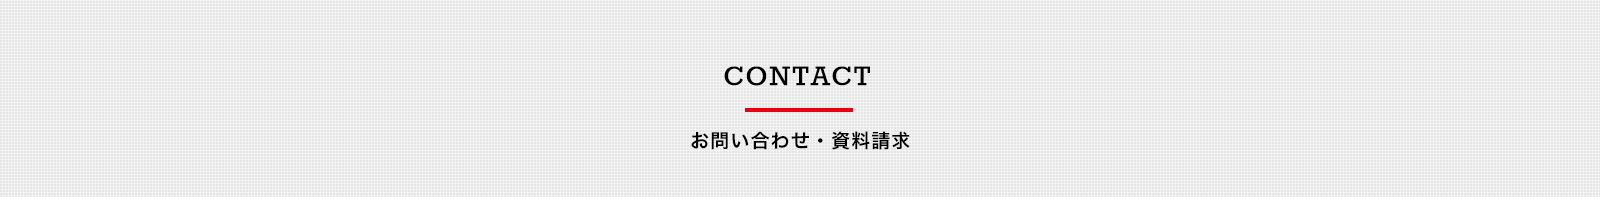 contact_top_banner